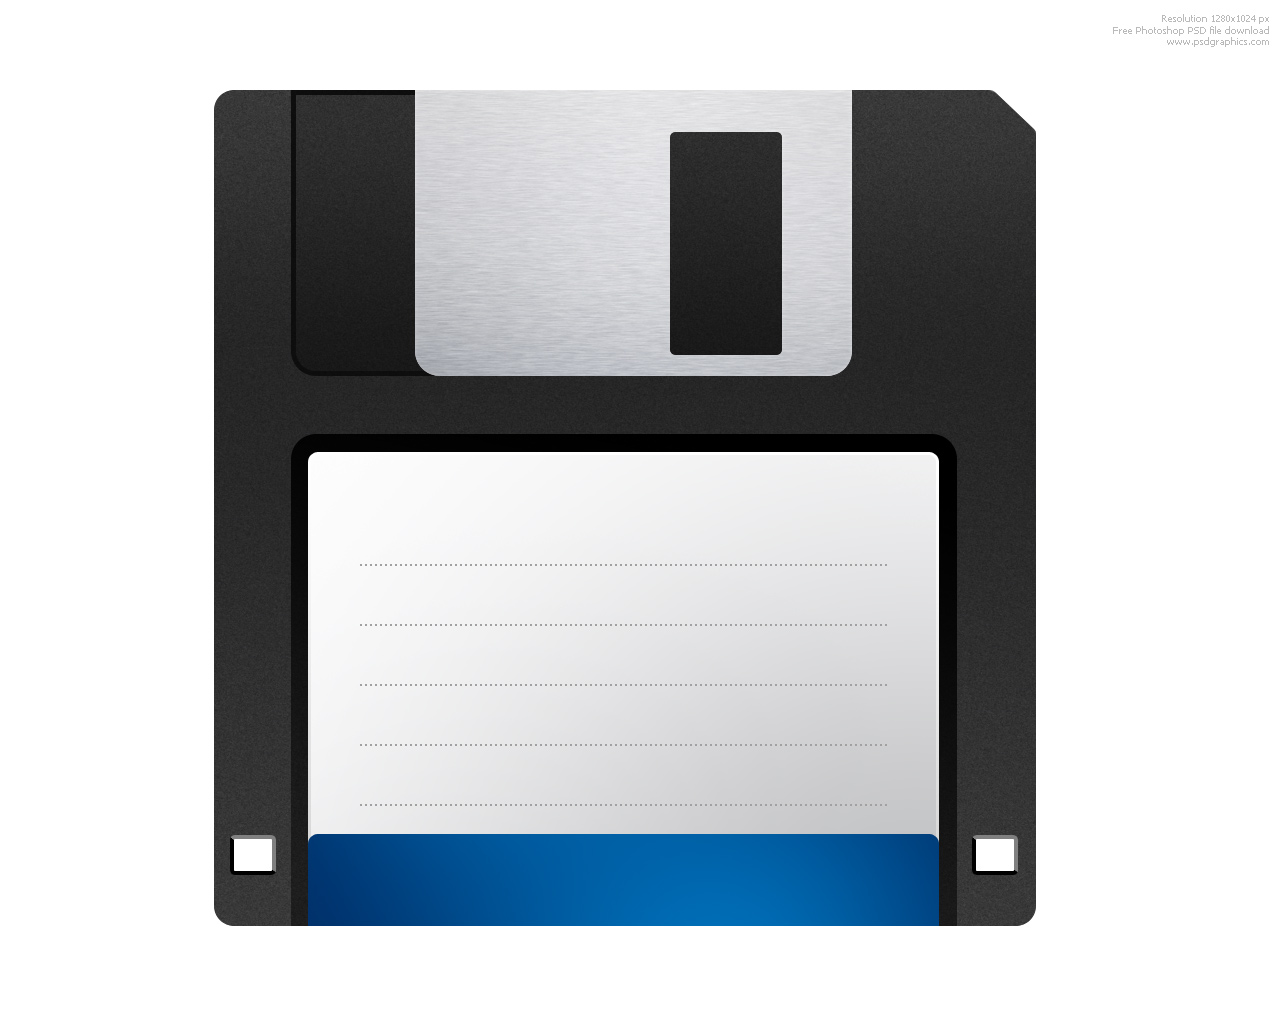 Unrealistic Future: Good Bye Floppy